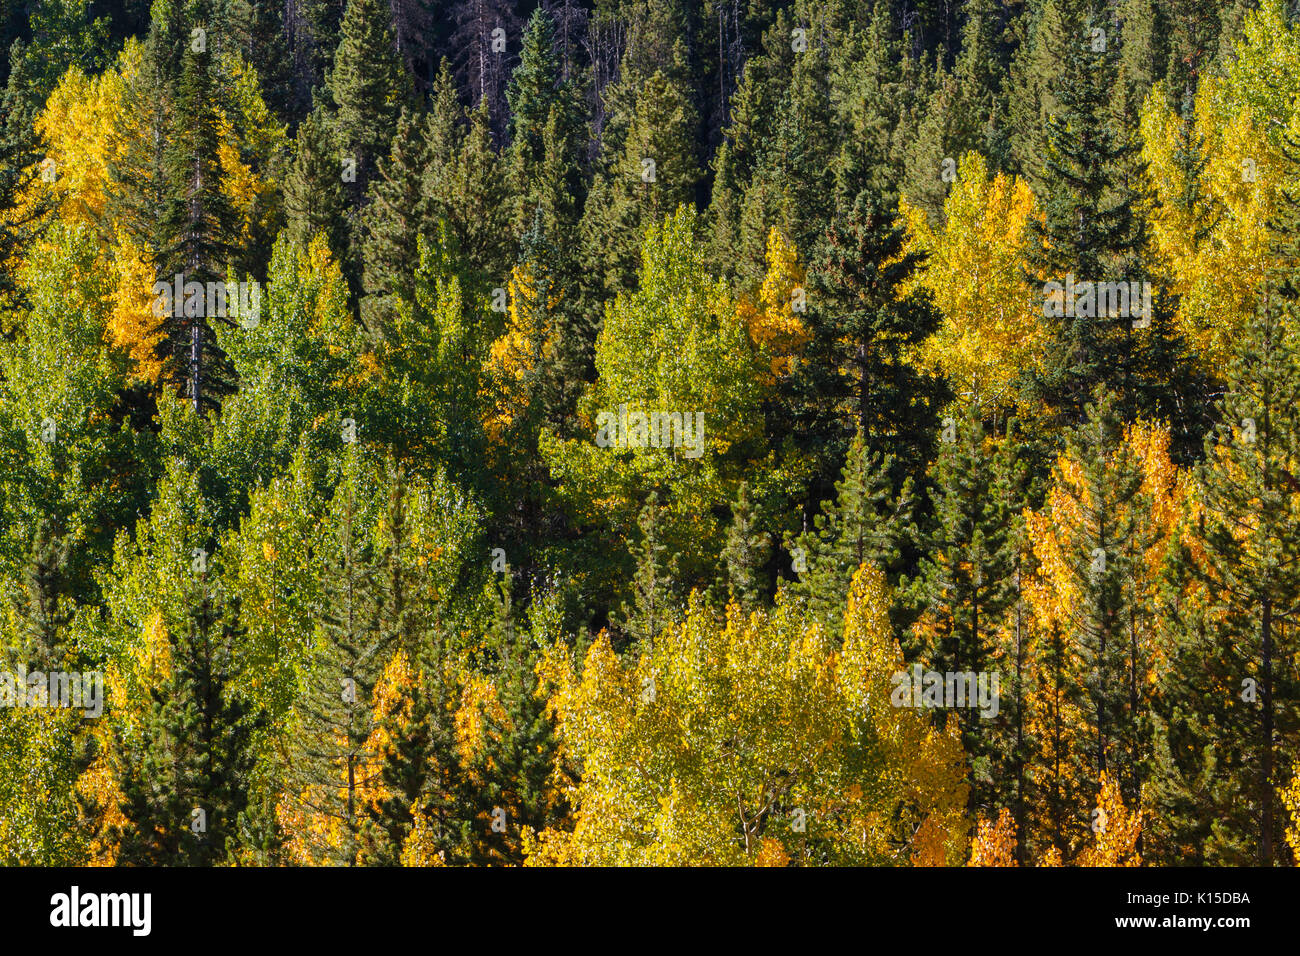 A mix of colorful conifers and Aspen trees in autumn along Guanella Pass Road.  Georgetown, Colorado. - Stock Image